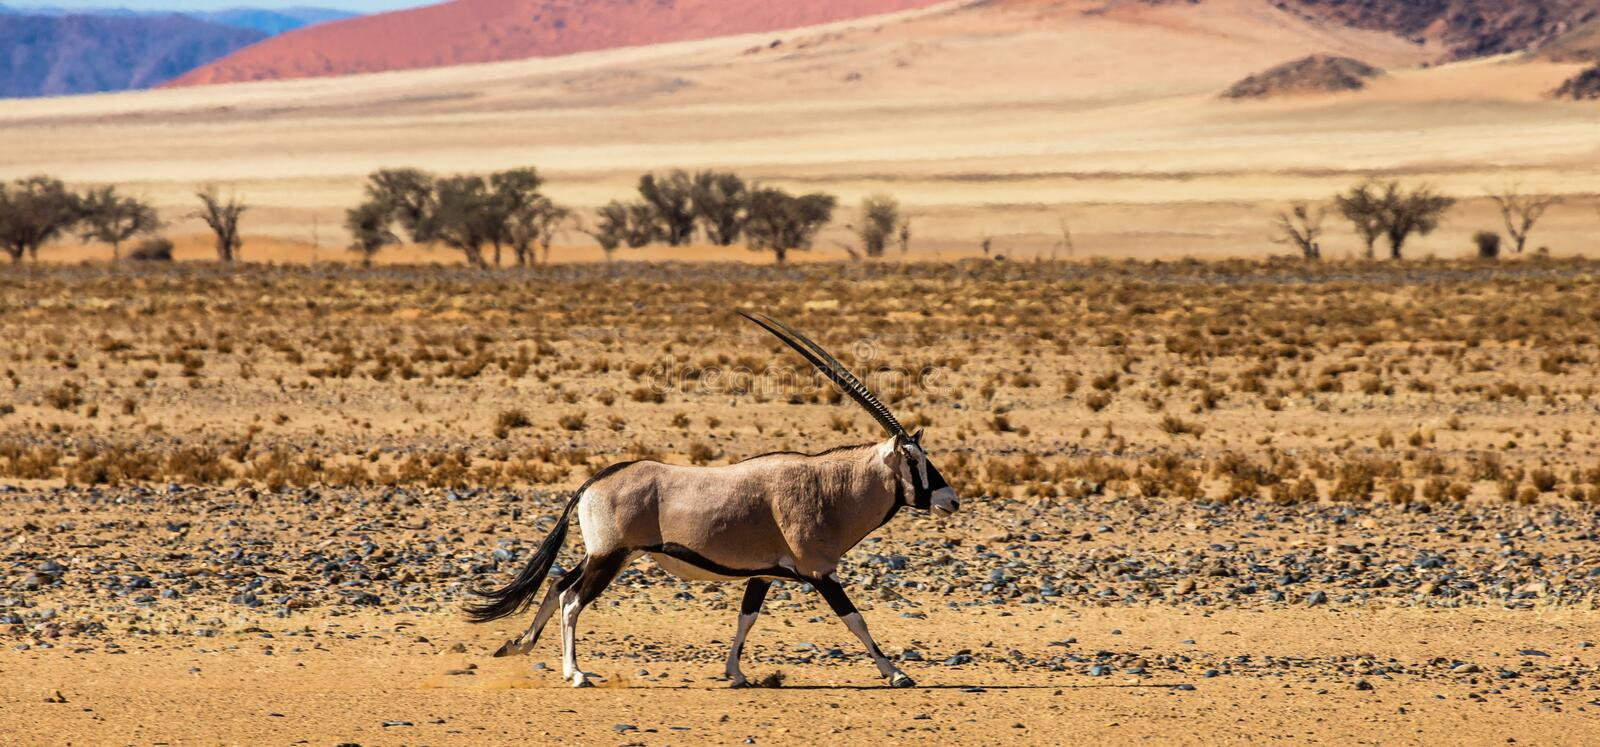 Oryx antelope on the background of the beautiful dunes on the Sossusvlei desert. Africa. Landscapes of Namibia. Sossusvlei. stock photos